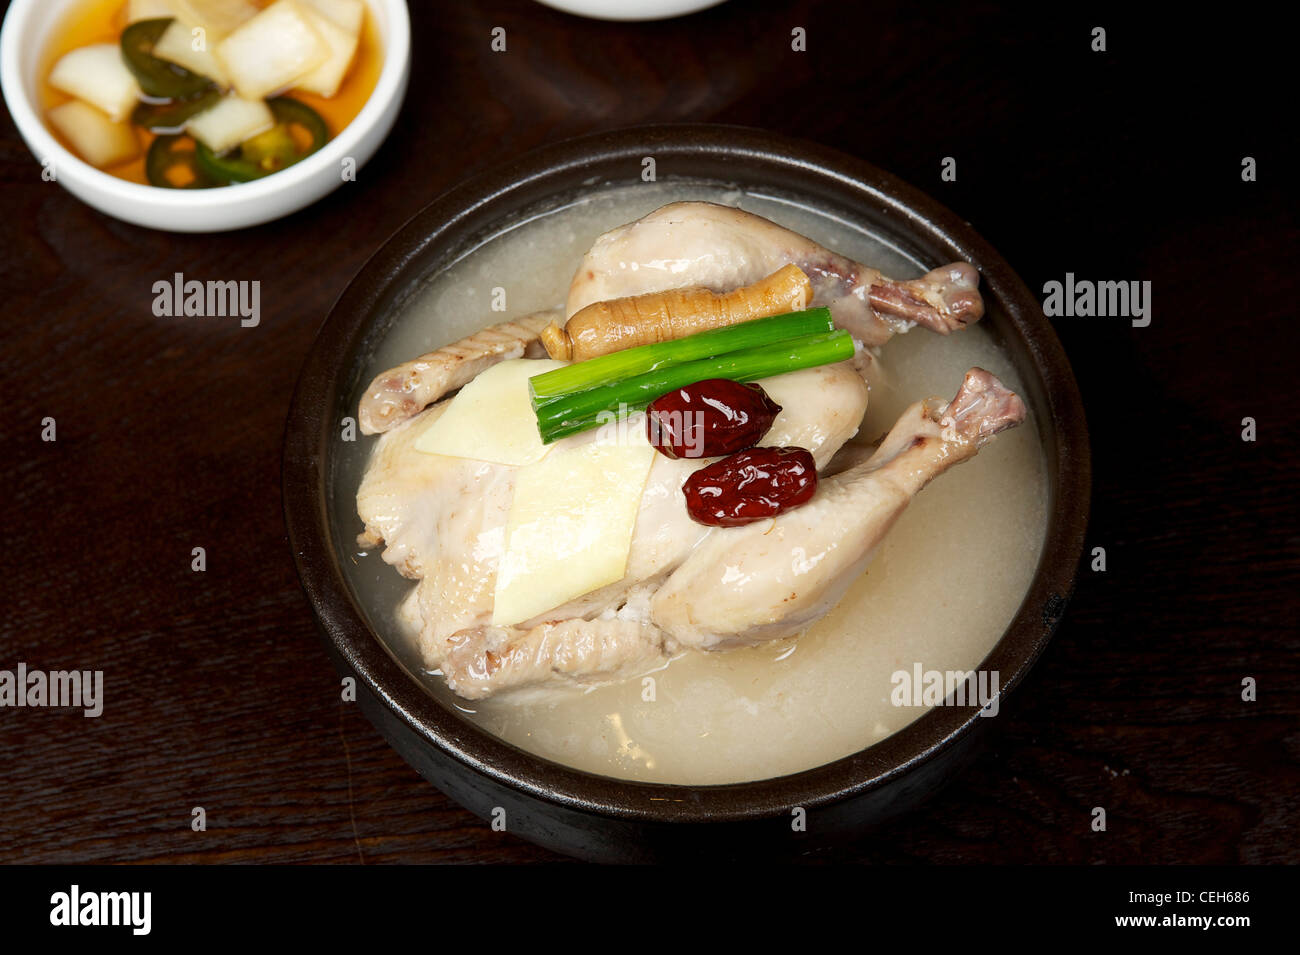 Korean Chicken soup with whole chicken - Stock Image